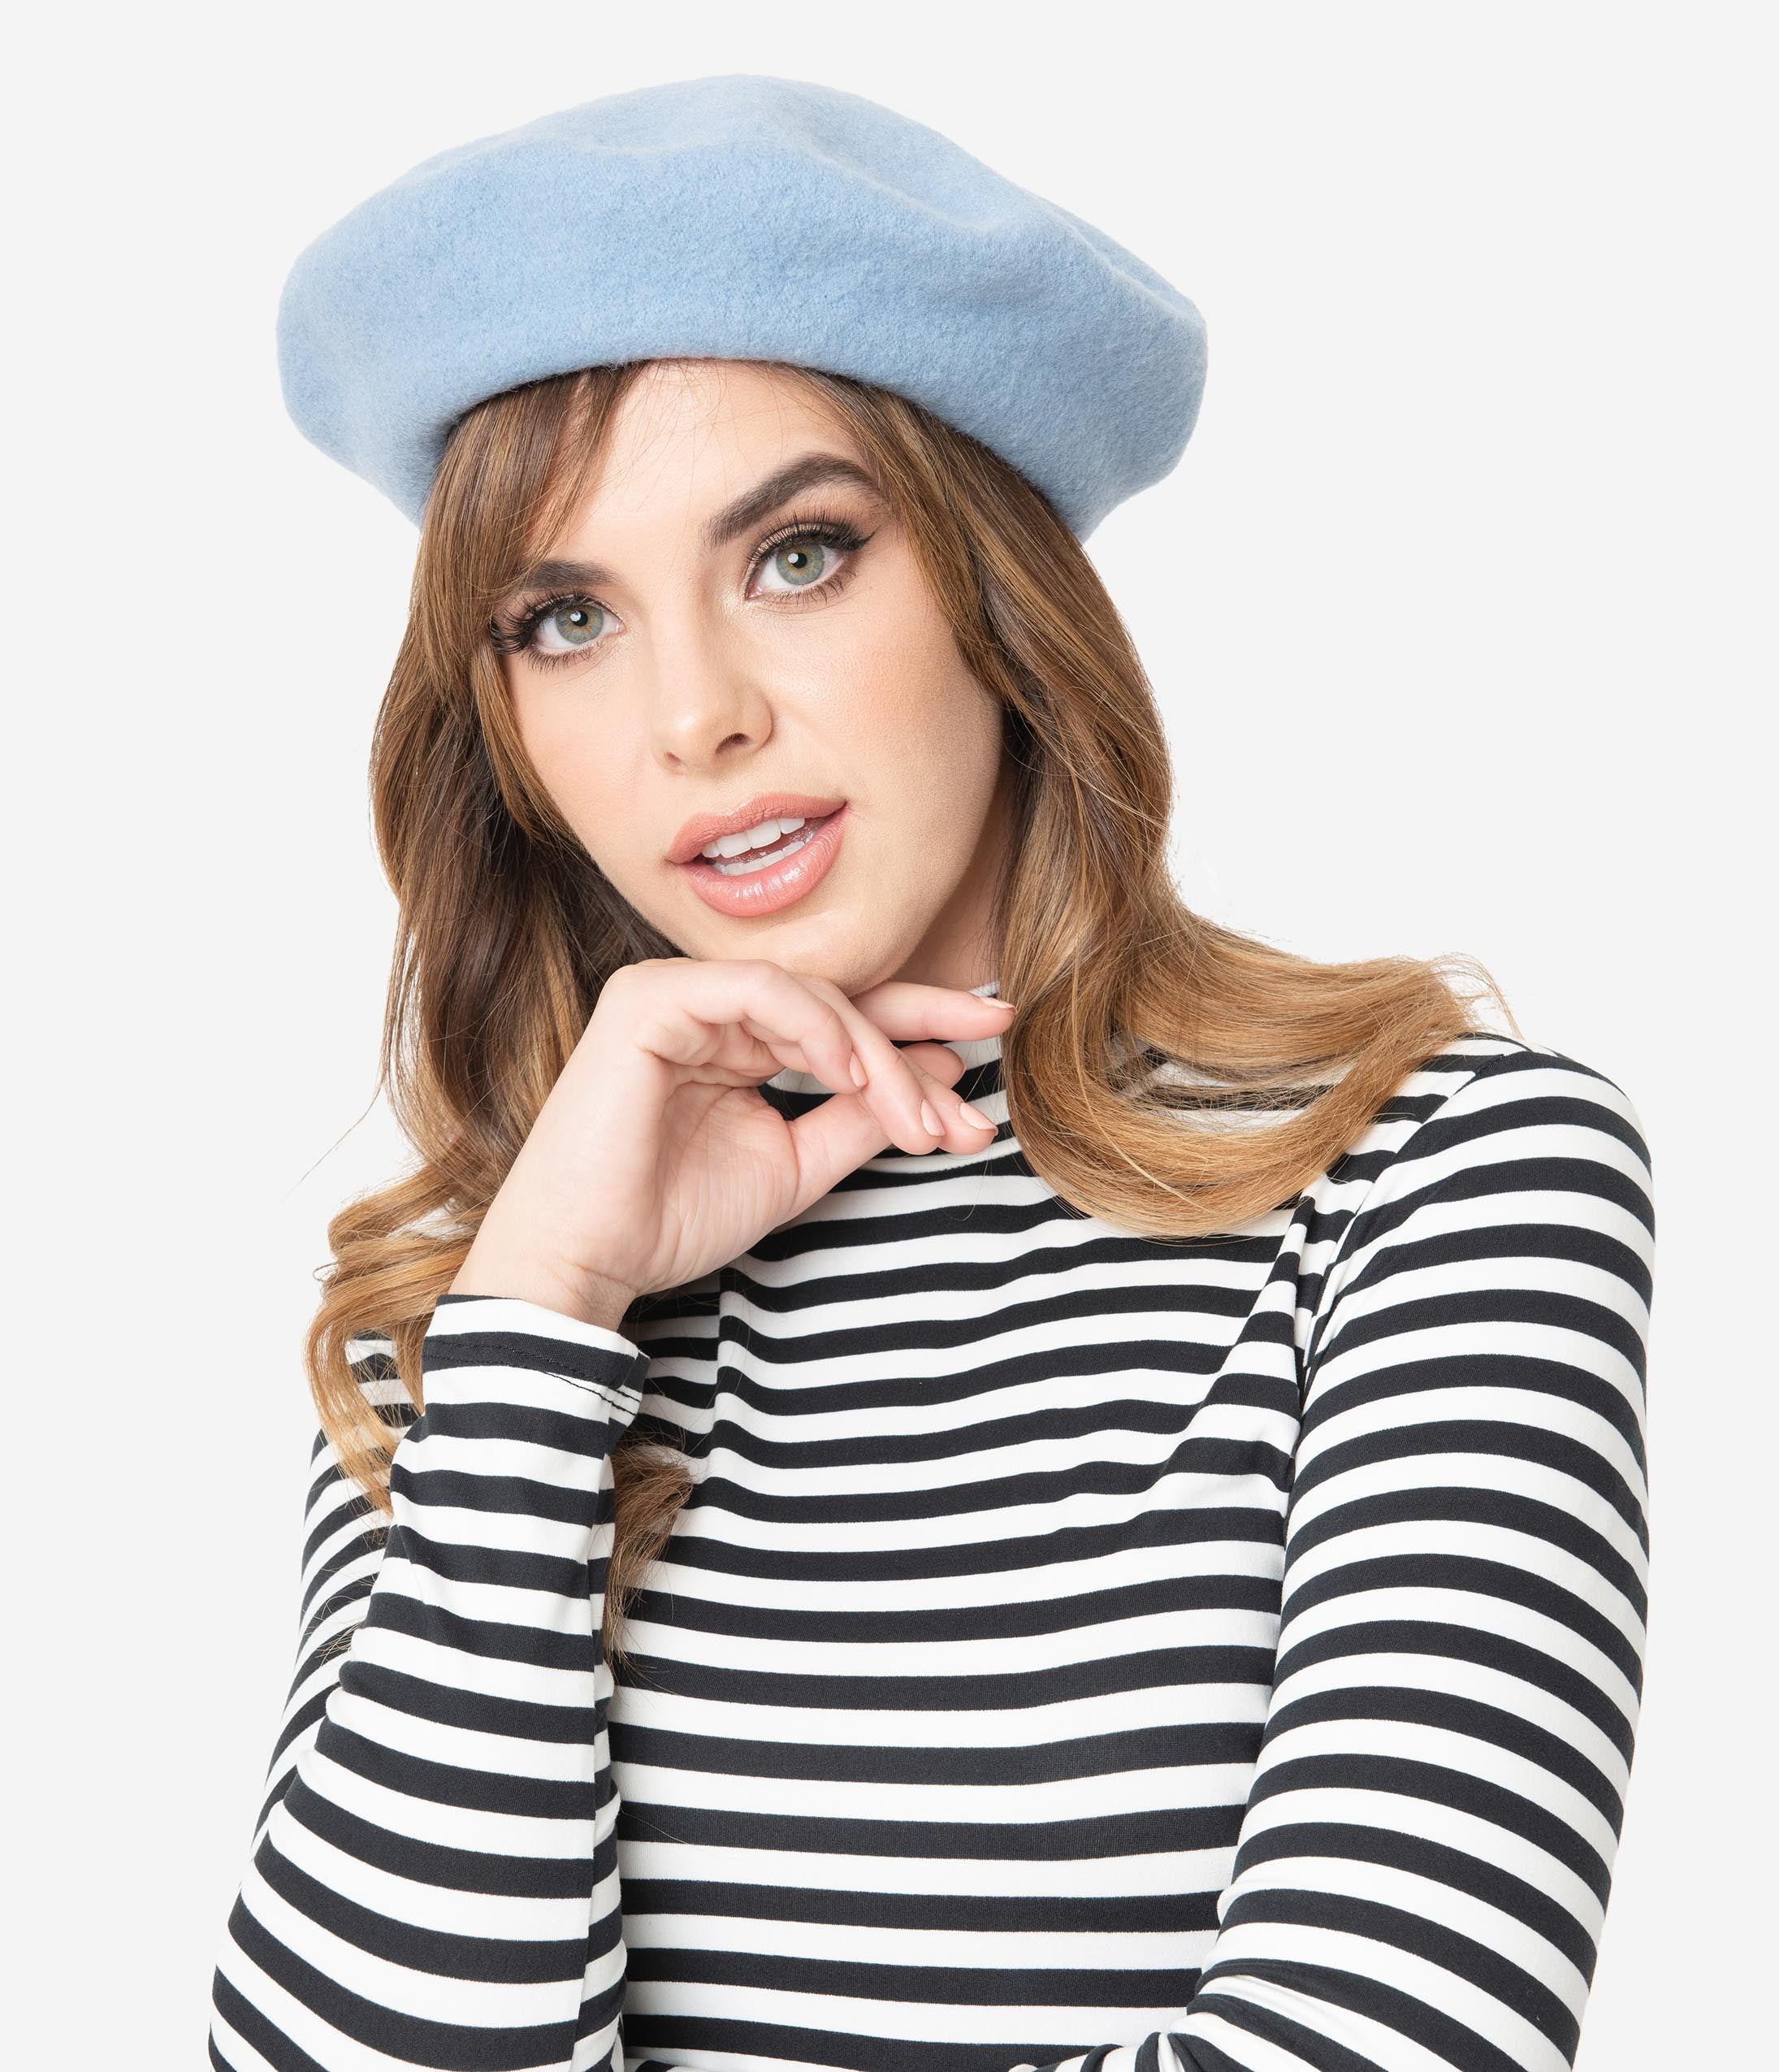 1920s Style Hats Retro Style Sky Blue Wool Beret $18.00 AT vintagedancer.com